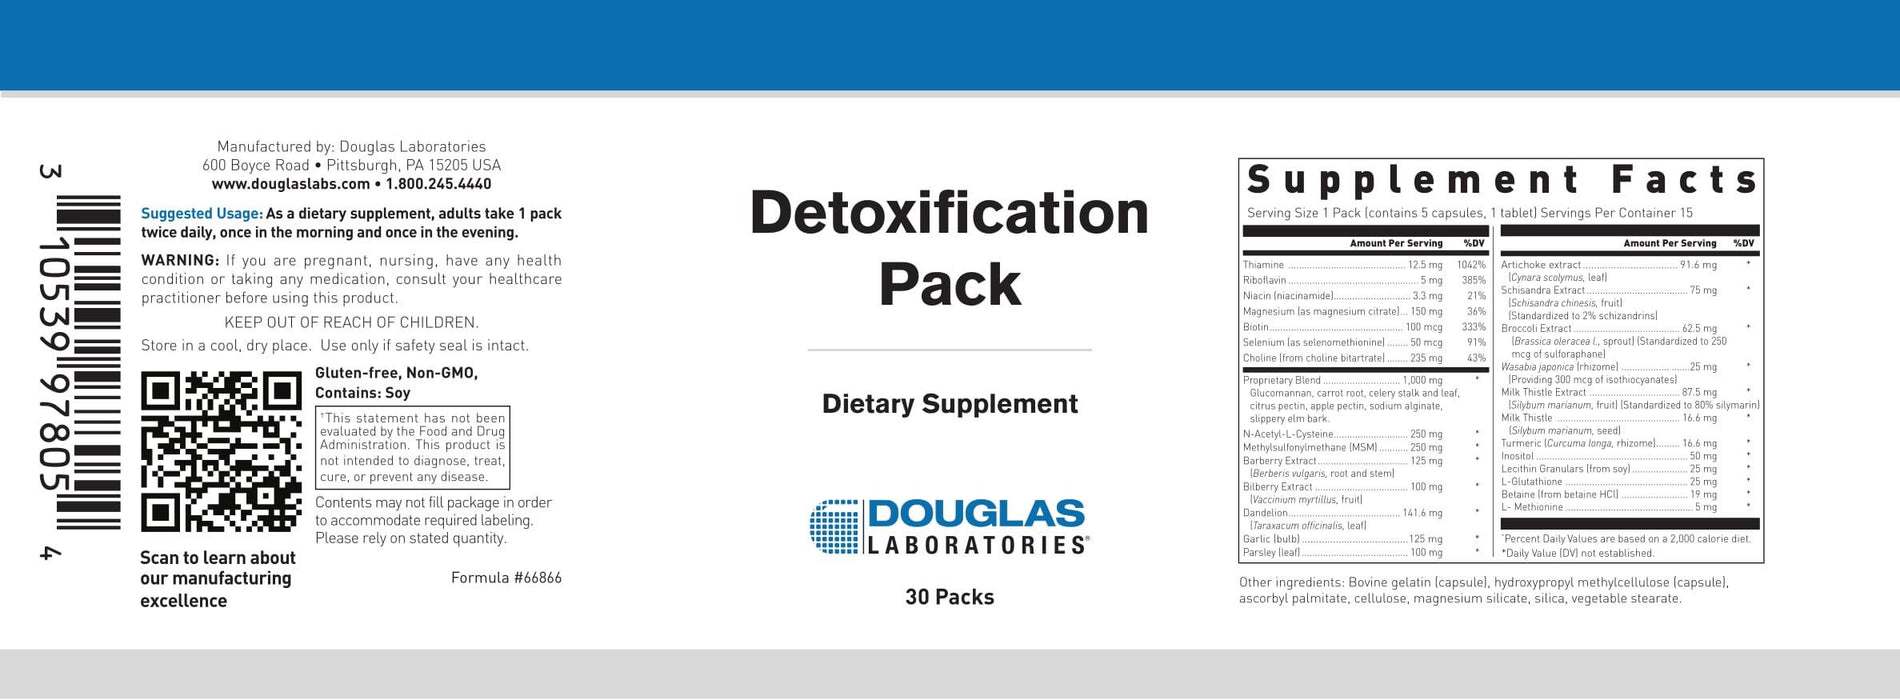 Douglas Laboratories Detoxification Pack